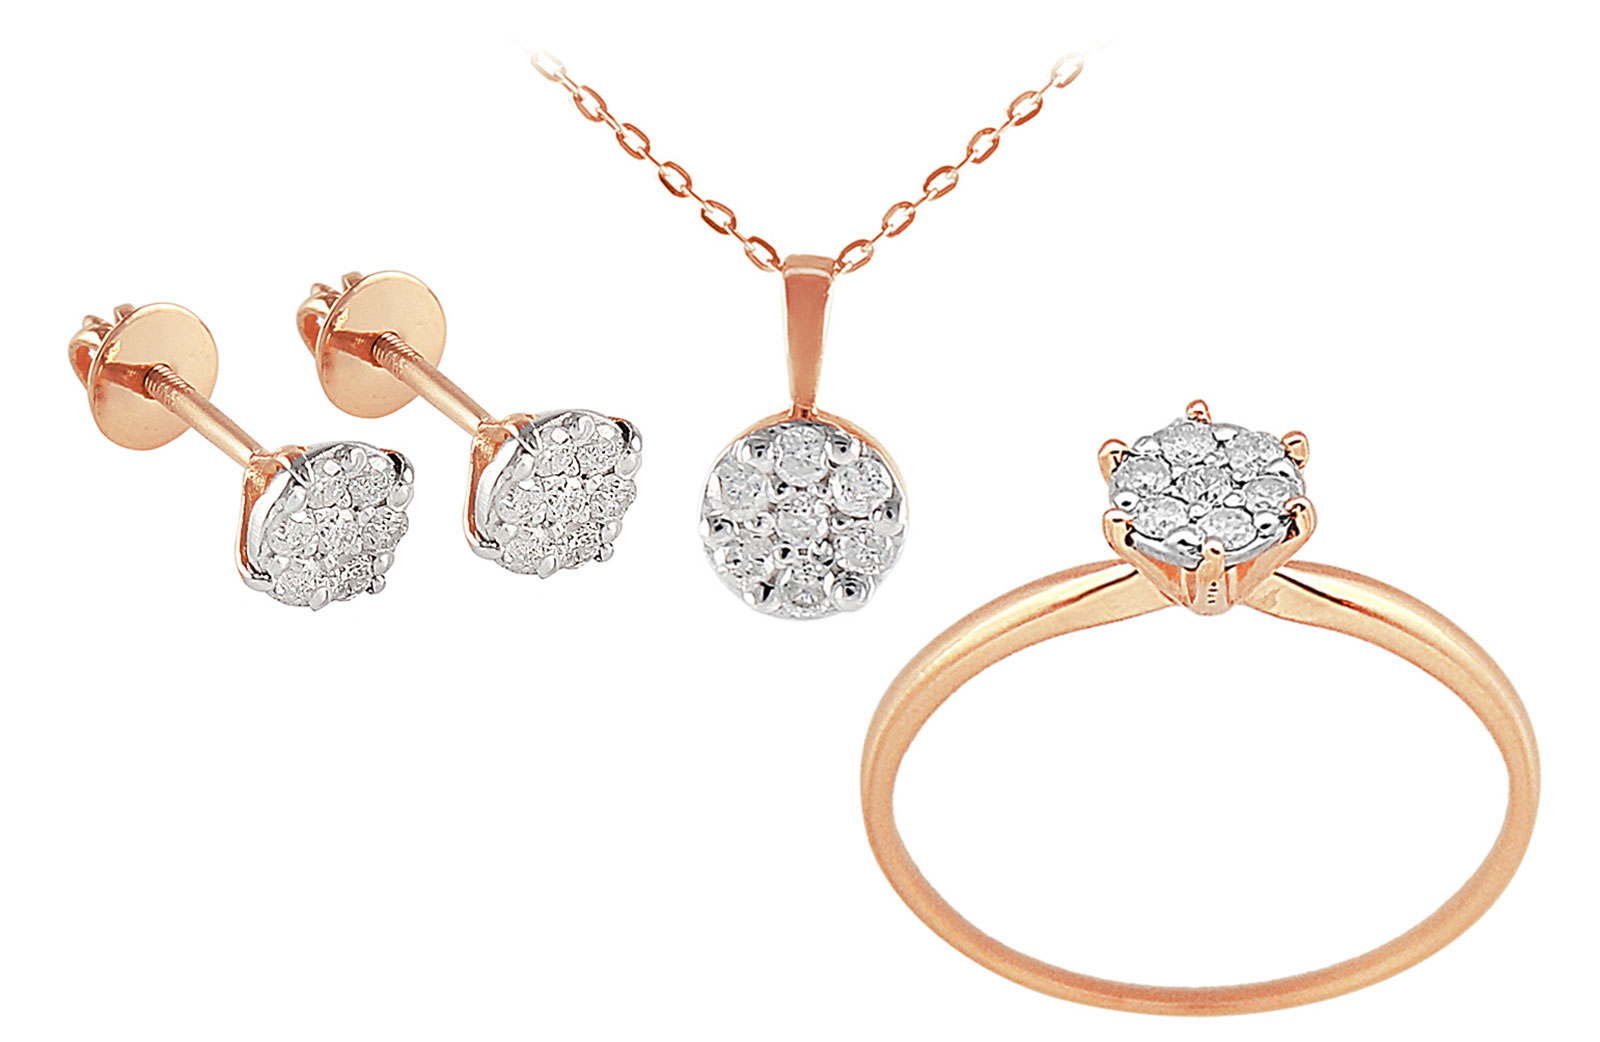 Vera Perla 18k Rose Solid Gold Diamonds Solitaire Earrings, Ring and Necklace Set